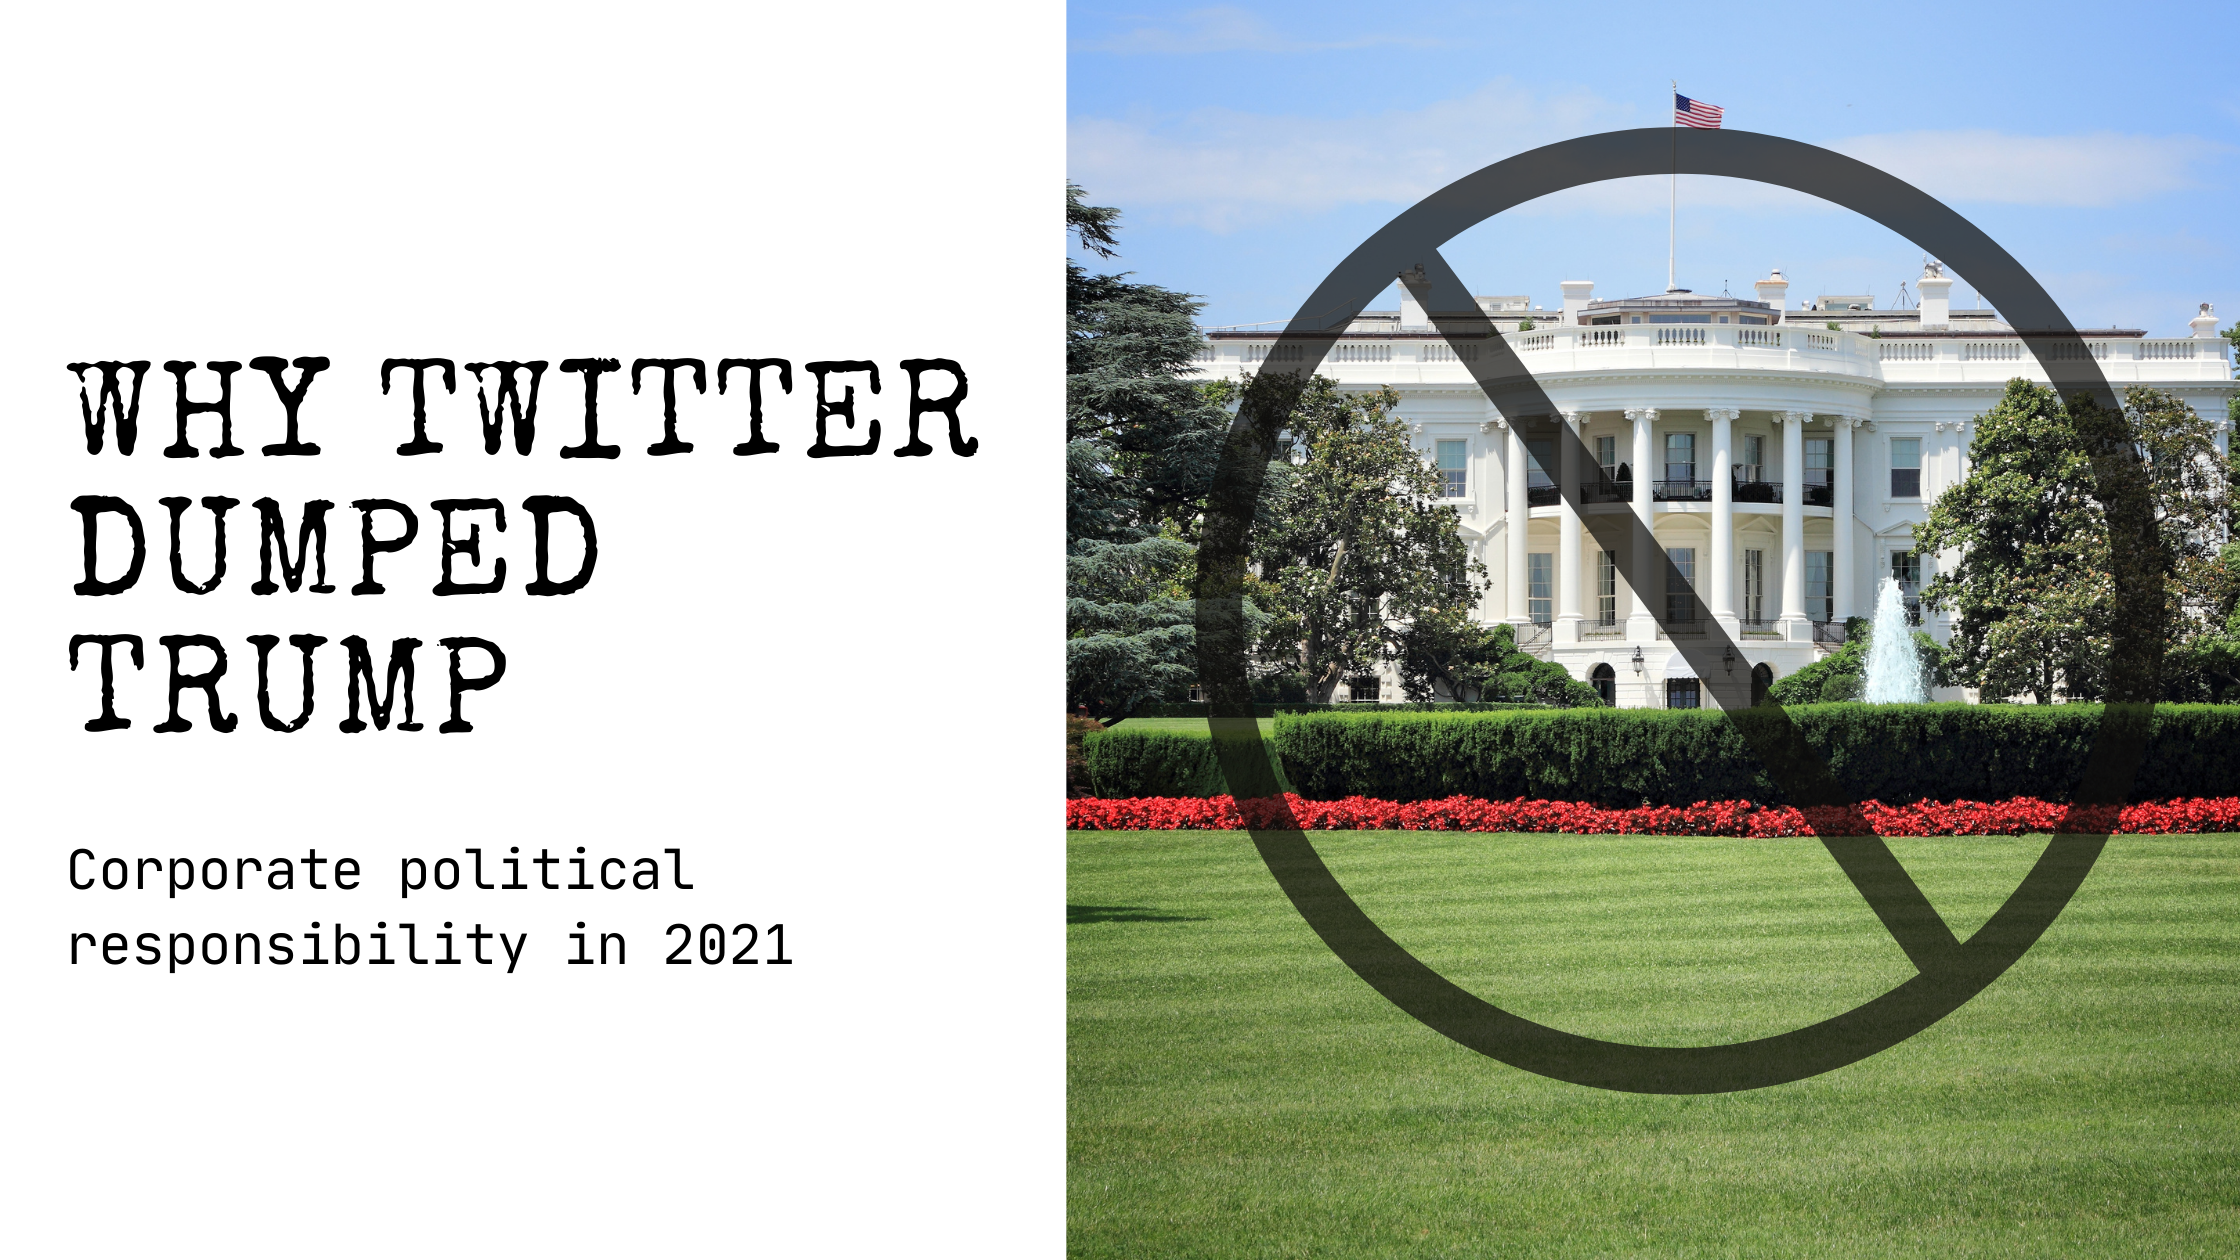 Twitter Dumped Trump. Is This The New Corporate Political Responsibility?